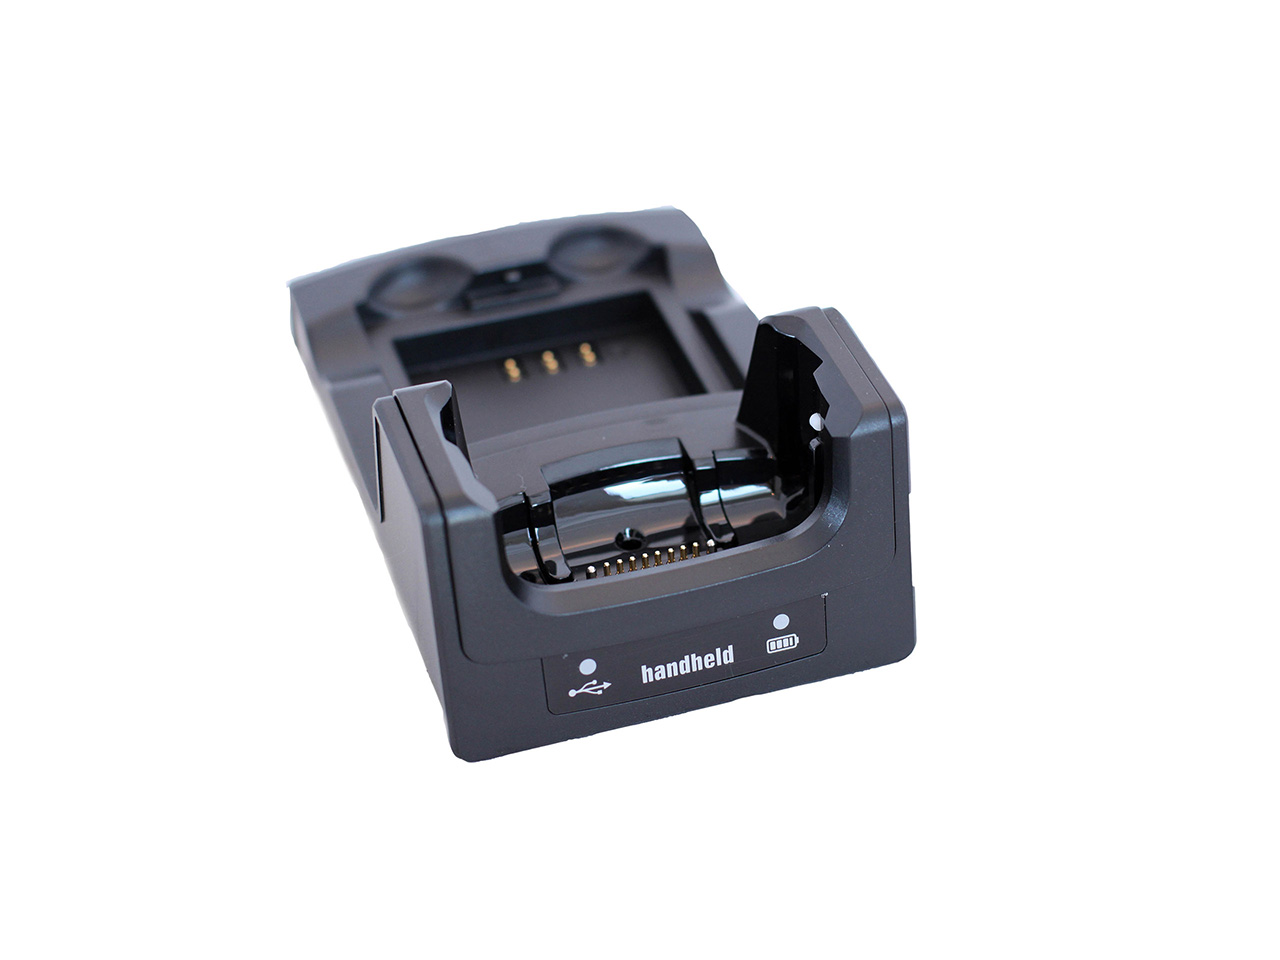 NX3-1007_1 slot standard cradle_charger and USB cable included.jpg